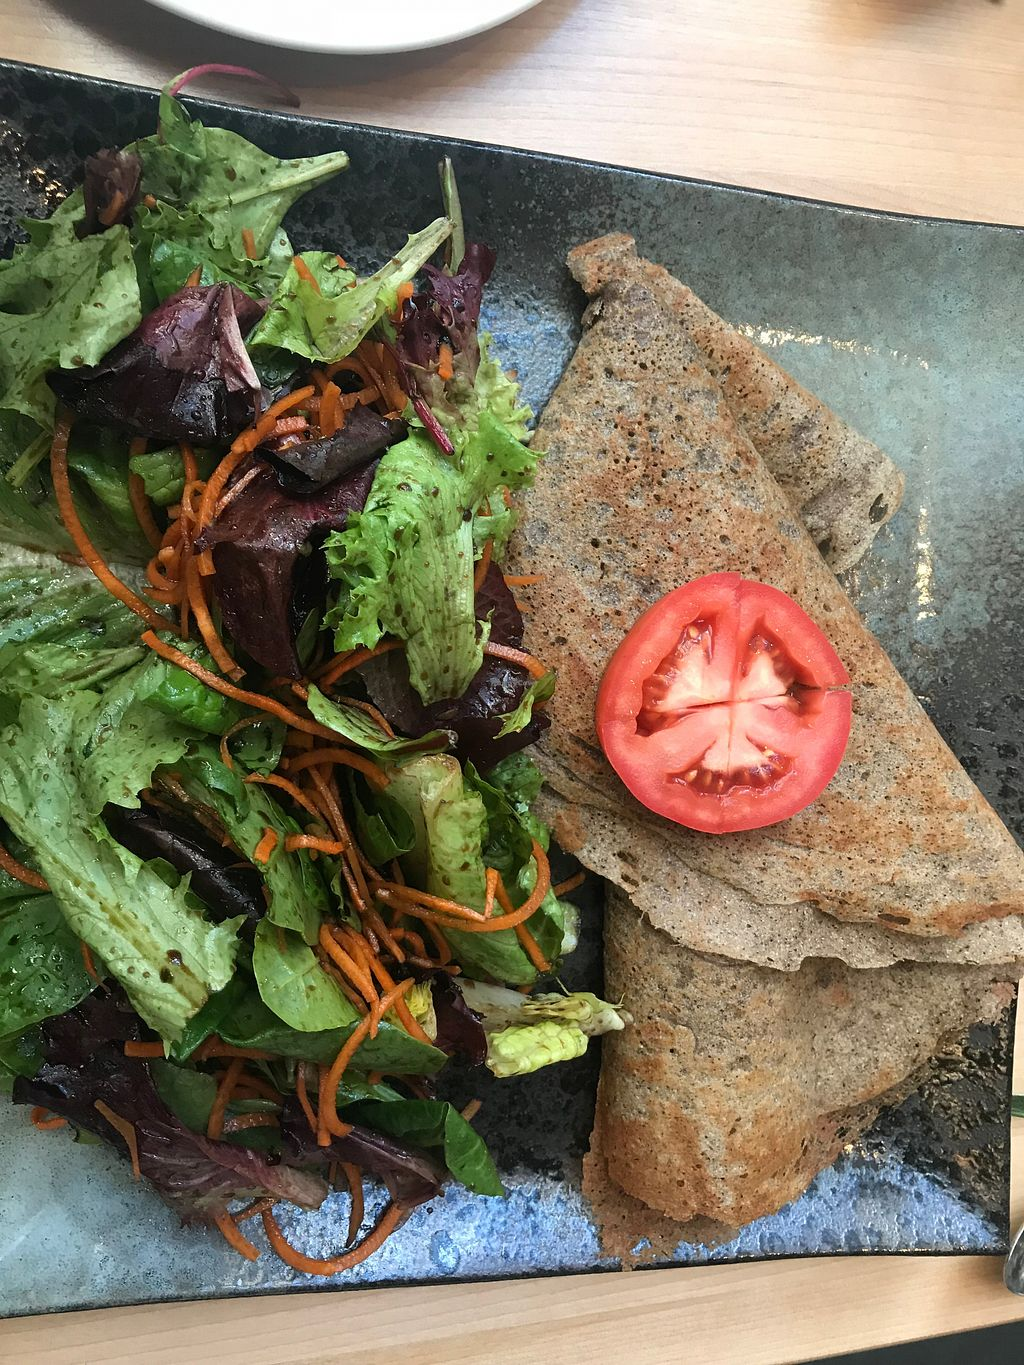 """Photo of Invitation V Vegan Bistro  by <a href=""""/members/profile/TheVeganBlend"""">TheVeganBlend</a> <br/>Savory Crepe with a yummy cashew cheese, mushrooms, and peppers, served with a large side salad. Fantastic!! <br/> May 13, 2018  - <a href='/contact/abuse/image/38634/398947'>Report</a>"""